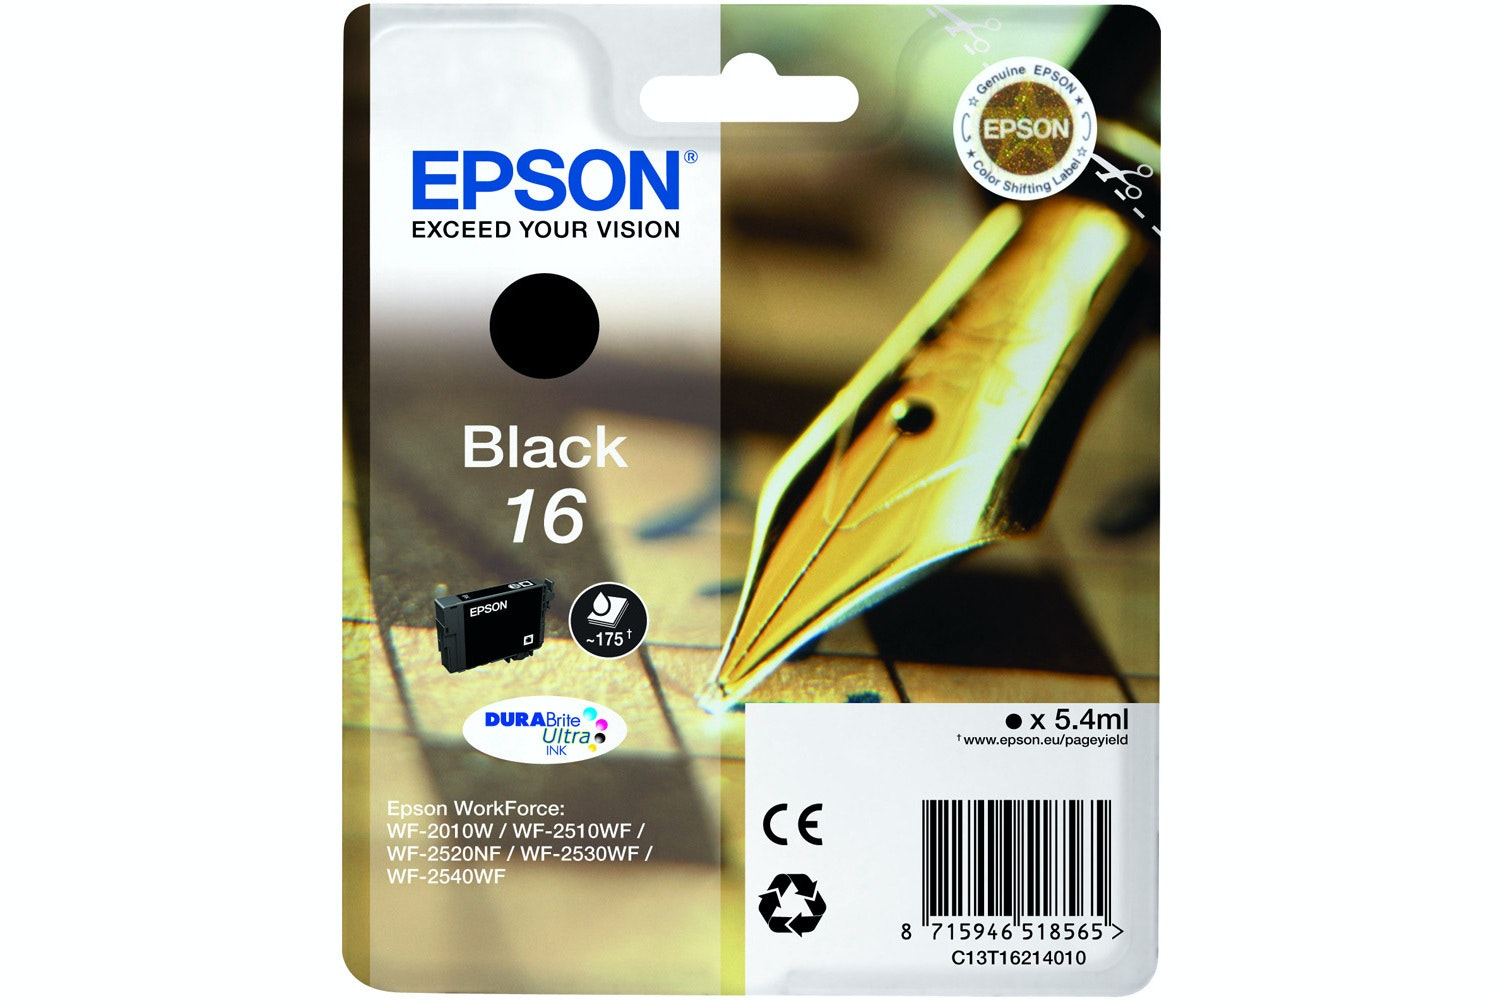 Epson Pen and Crossword Ink Black